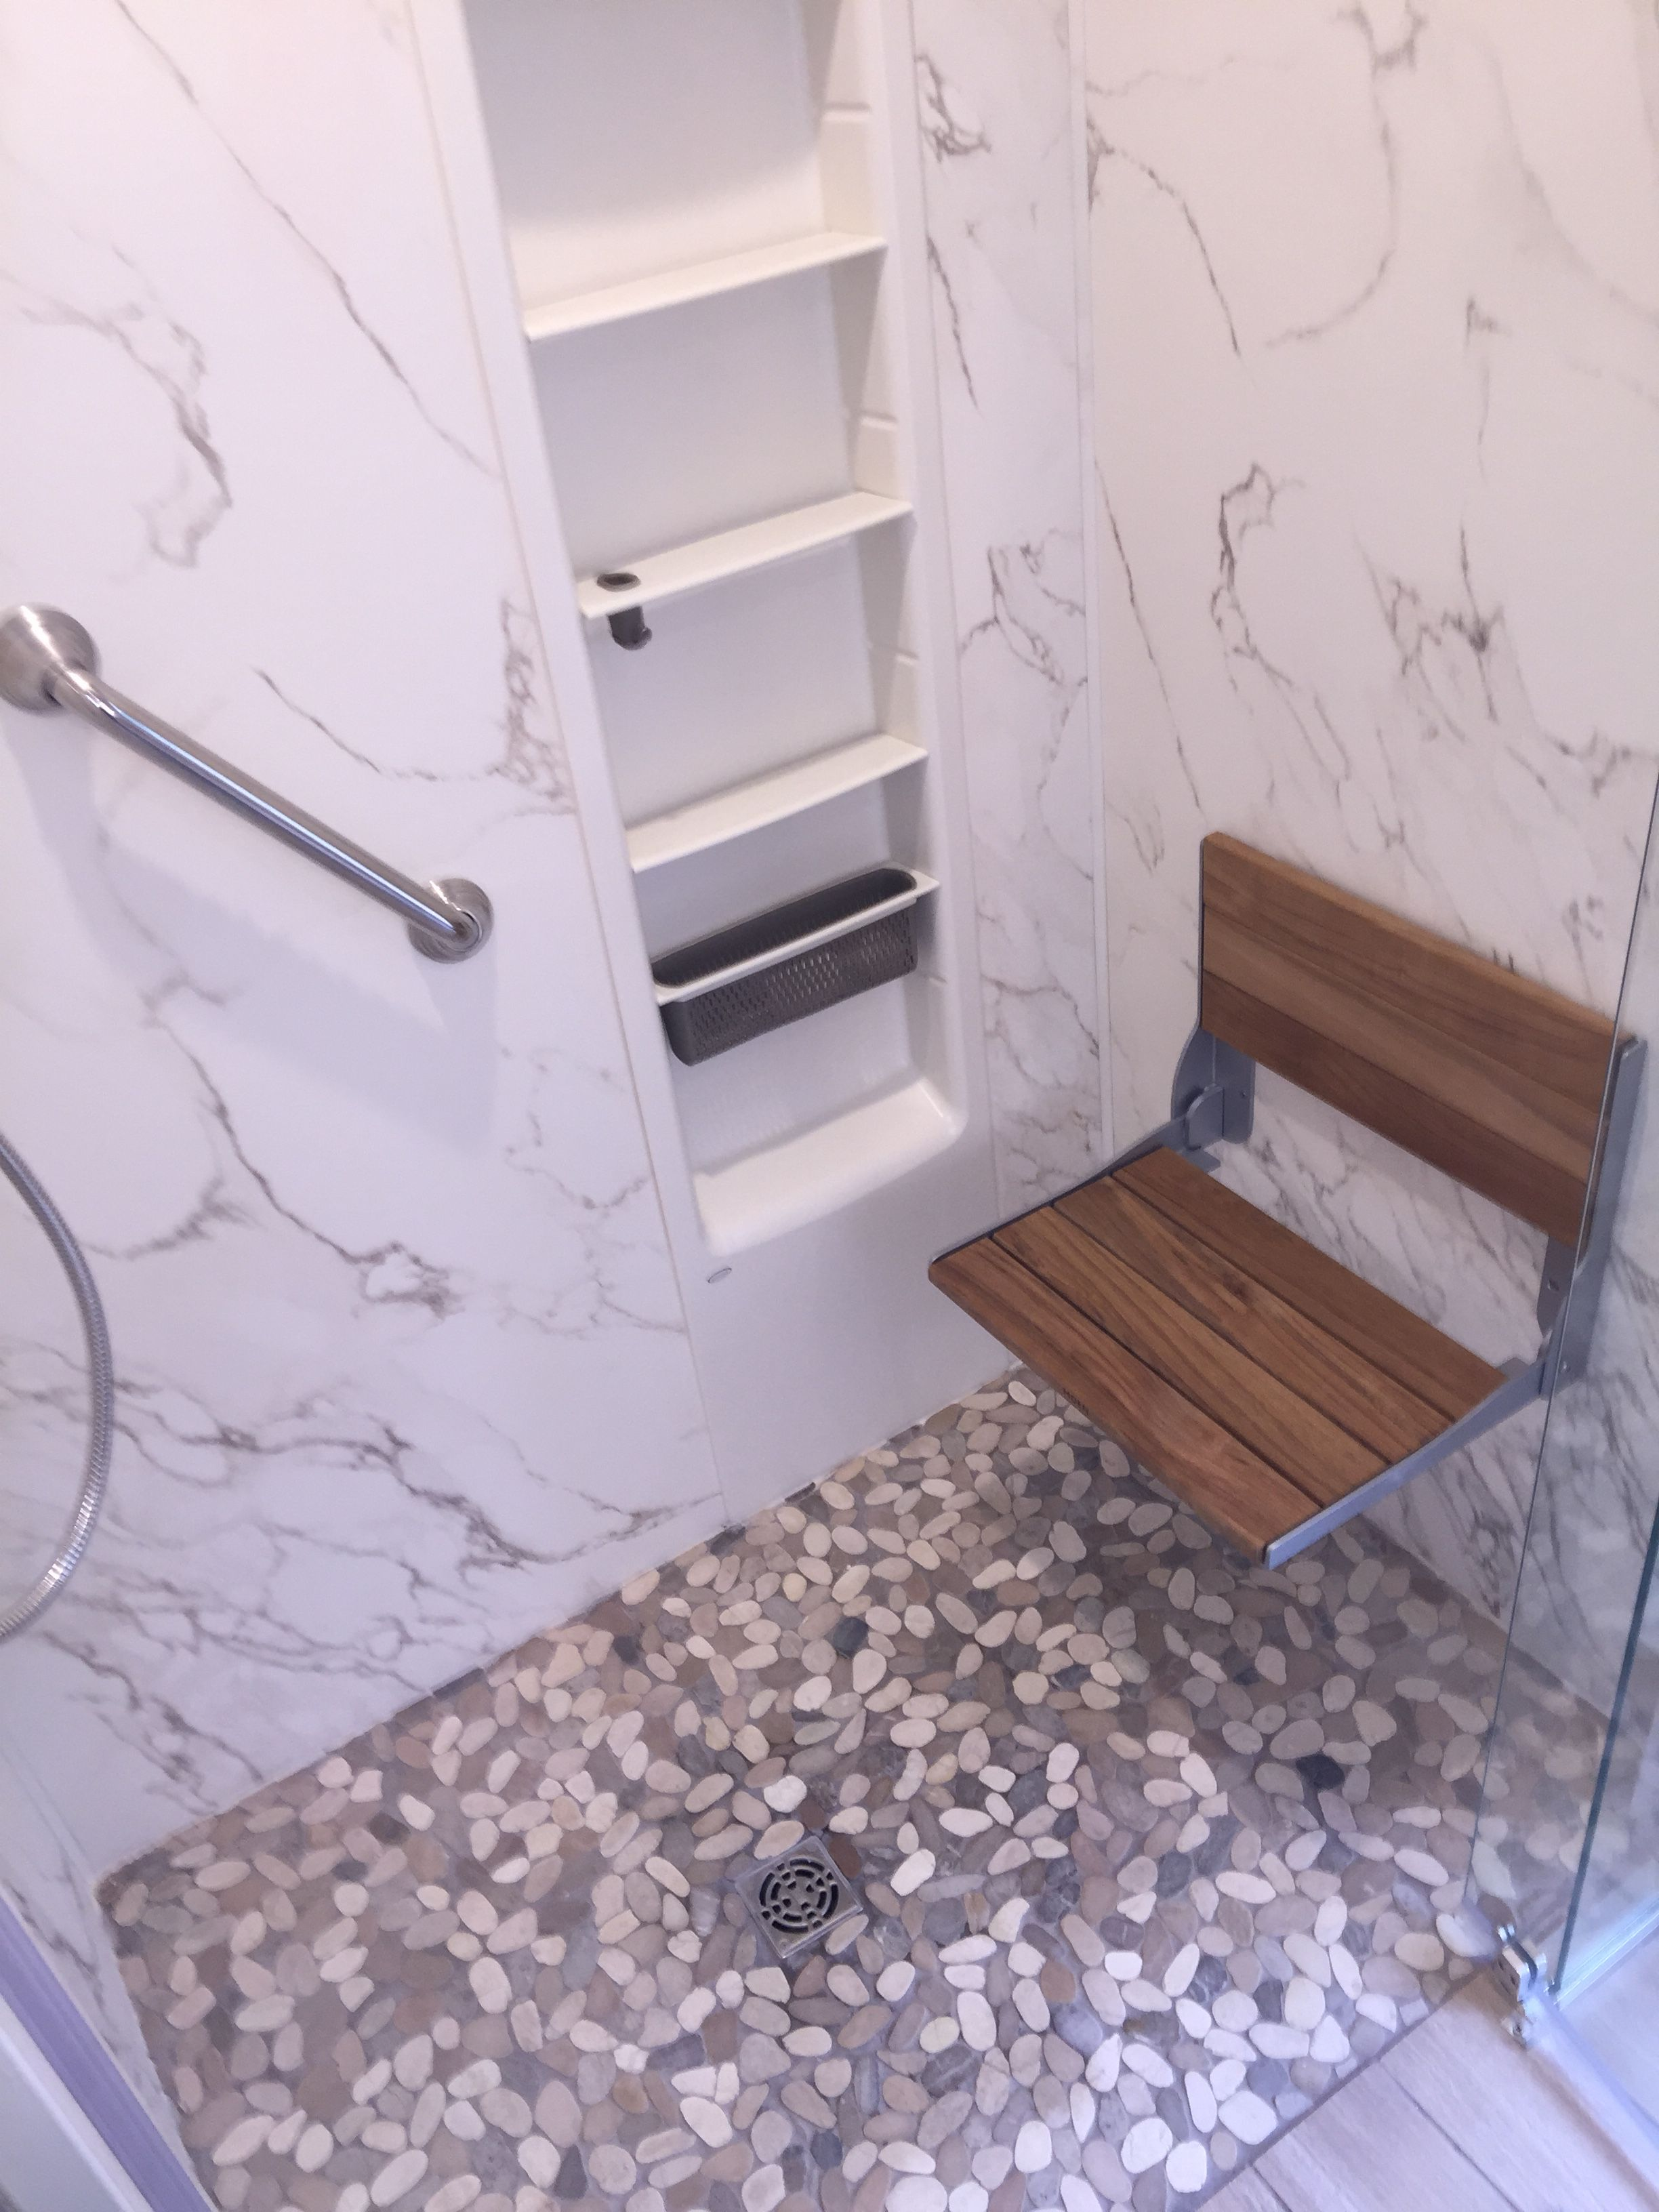 cool rock pebble pictures ideas black sliced tile river floor floors charcoal and shower